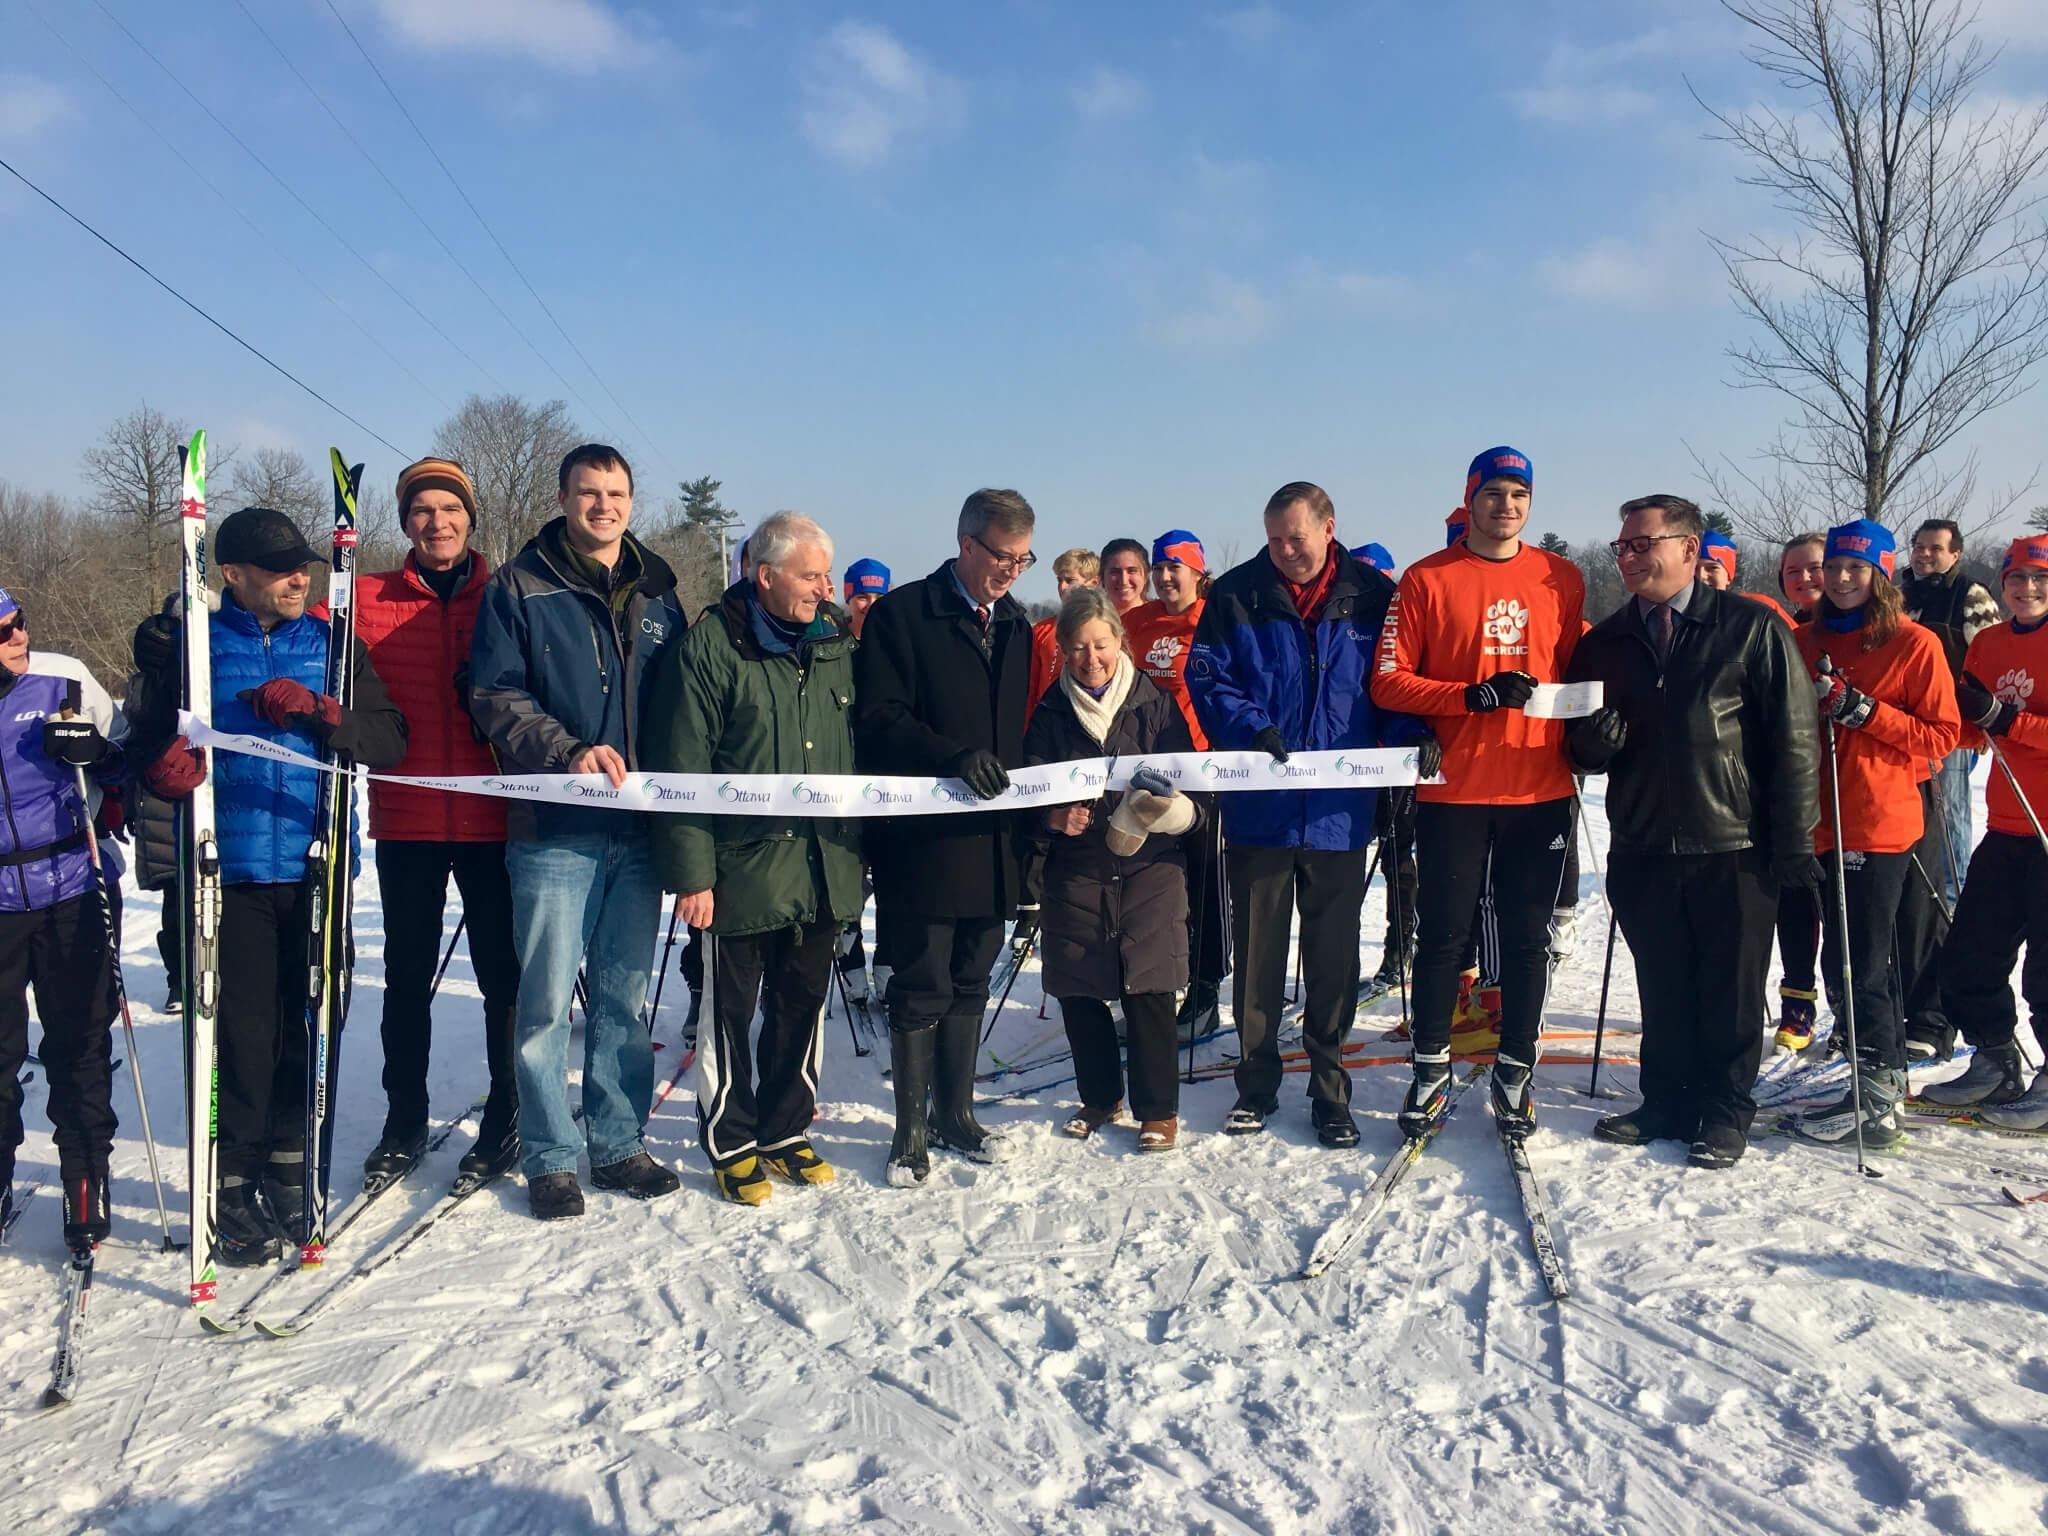 The opening of the Ski Heritage East winter trail in January 2018.